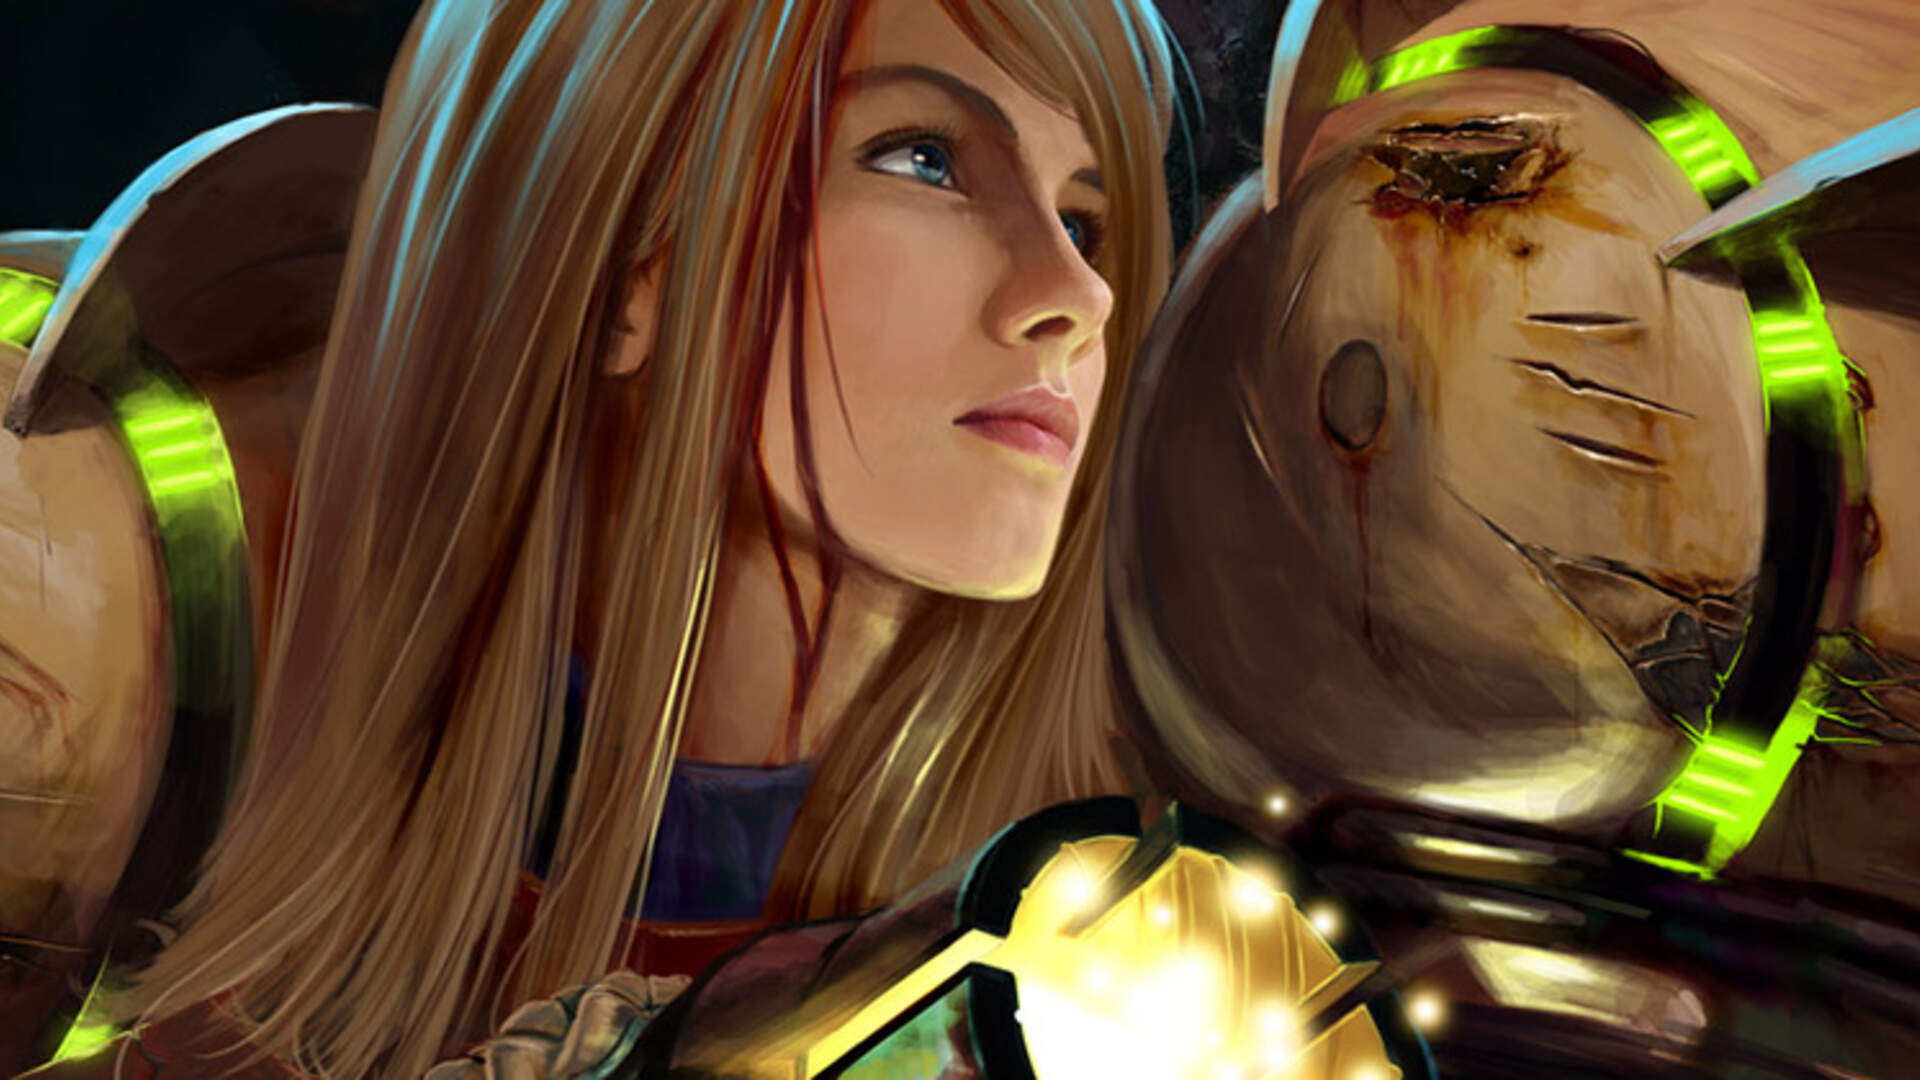 Does Metroid Have a Future?